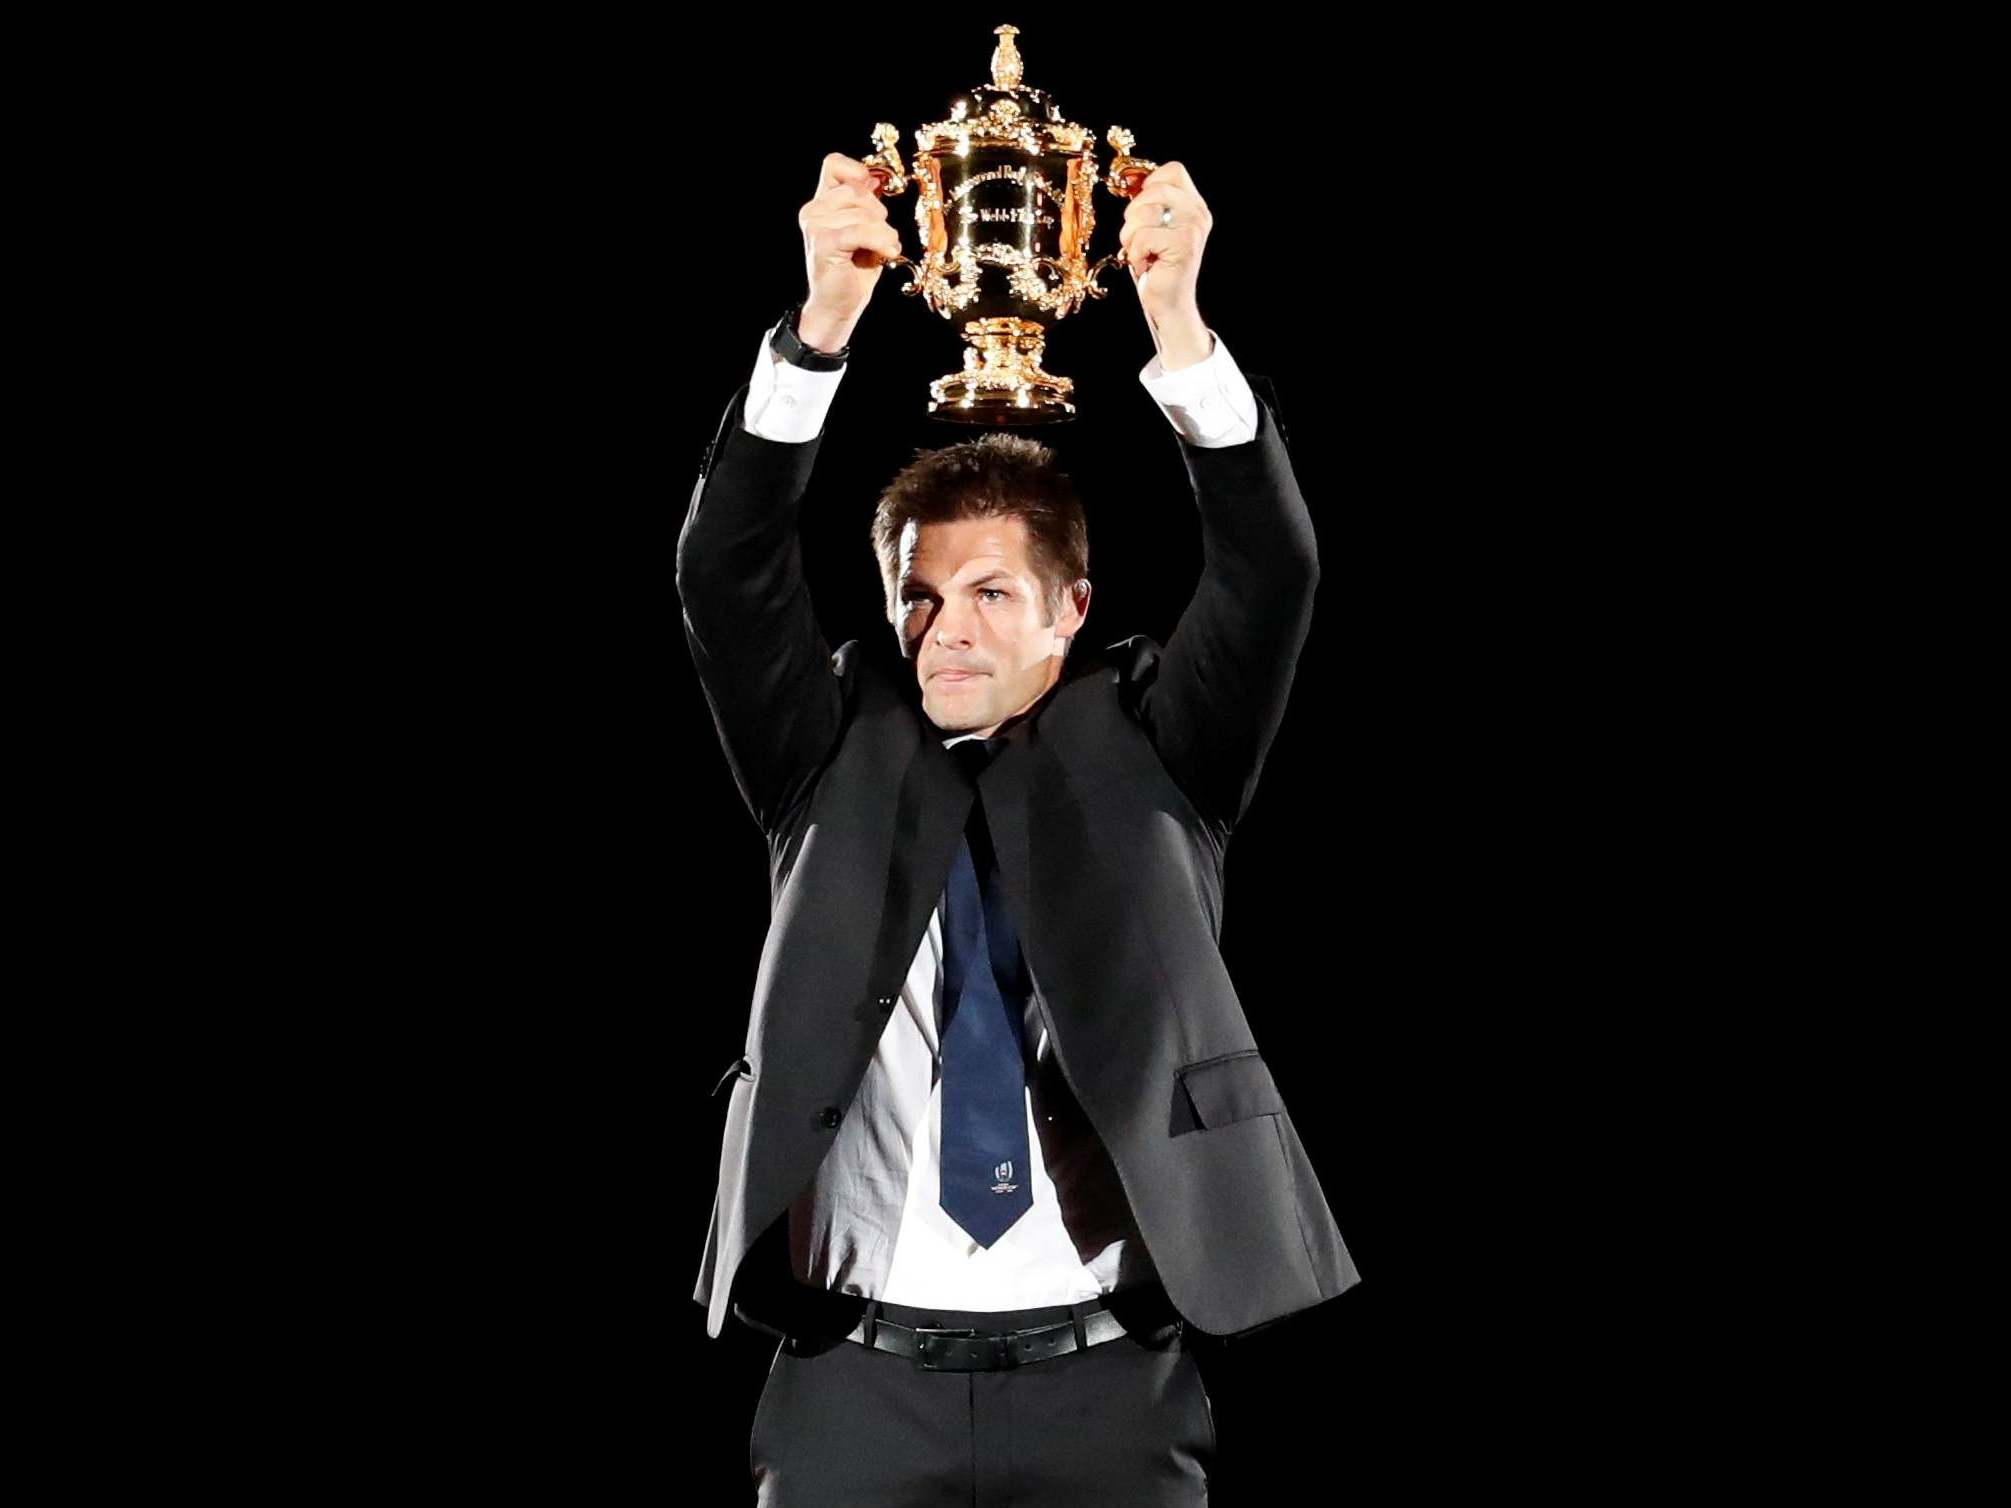 Rugby World Cup 100 greatest players: A journey back through the career of Richie McCaw, simply the best